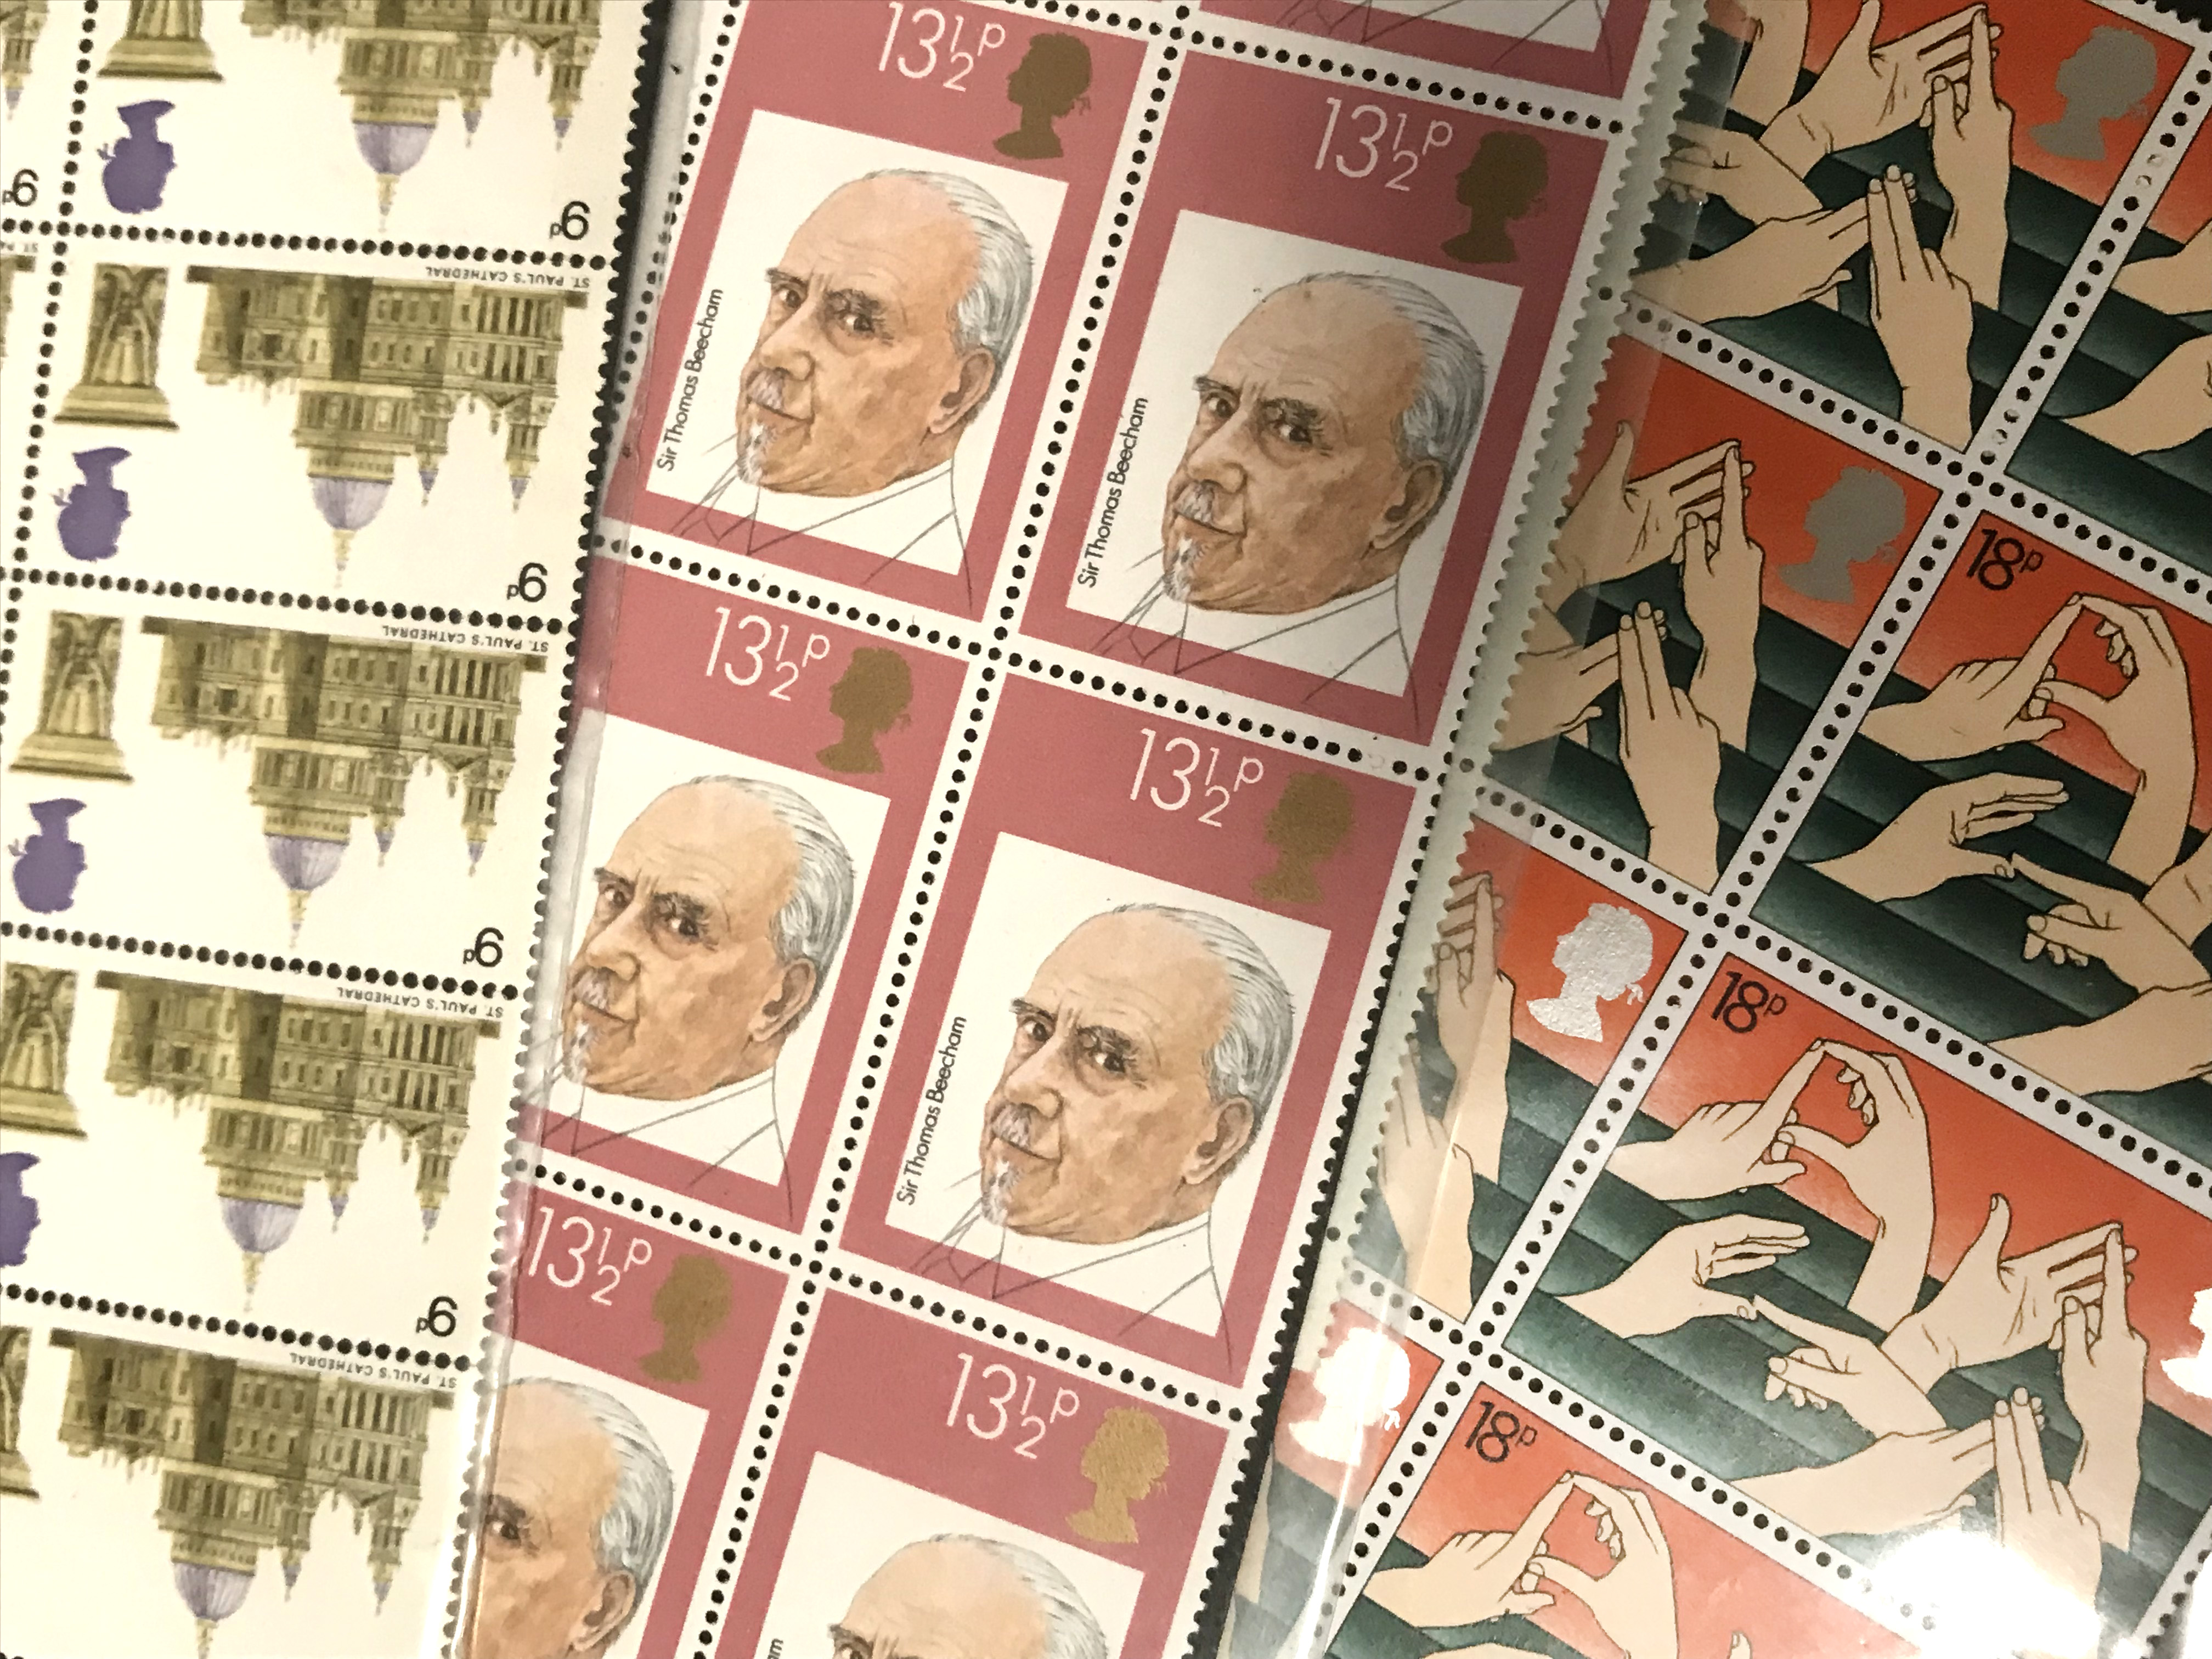 MINT STAMPS IN BLOCKS WITH ERRORS - Image 3 of 3